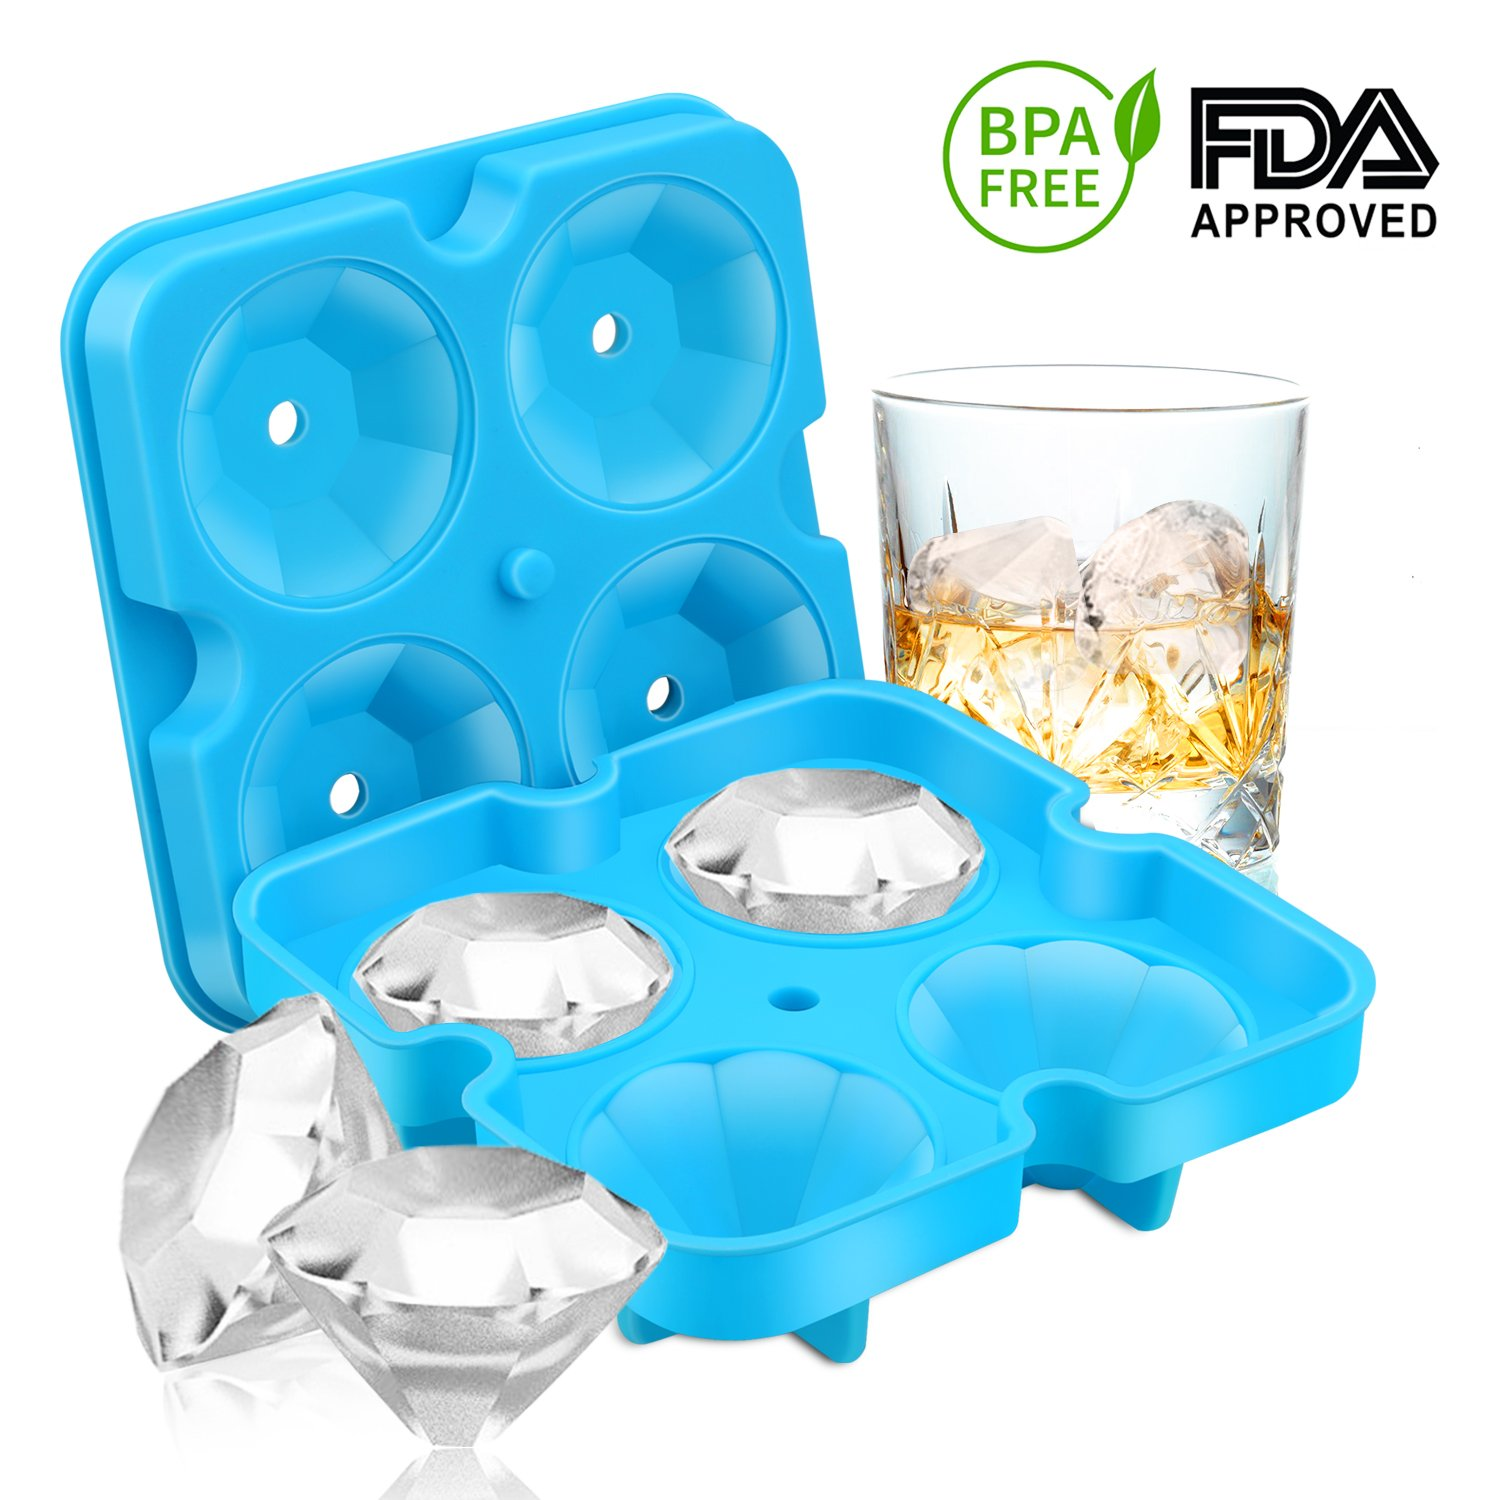 Ice Cube Trays, Diamond-Shaped Fun Ice Cube Molds BPA Silicone Flexible Ice Maker for Chilling Whiskey Cocktails (Black) SAWNZC